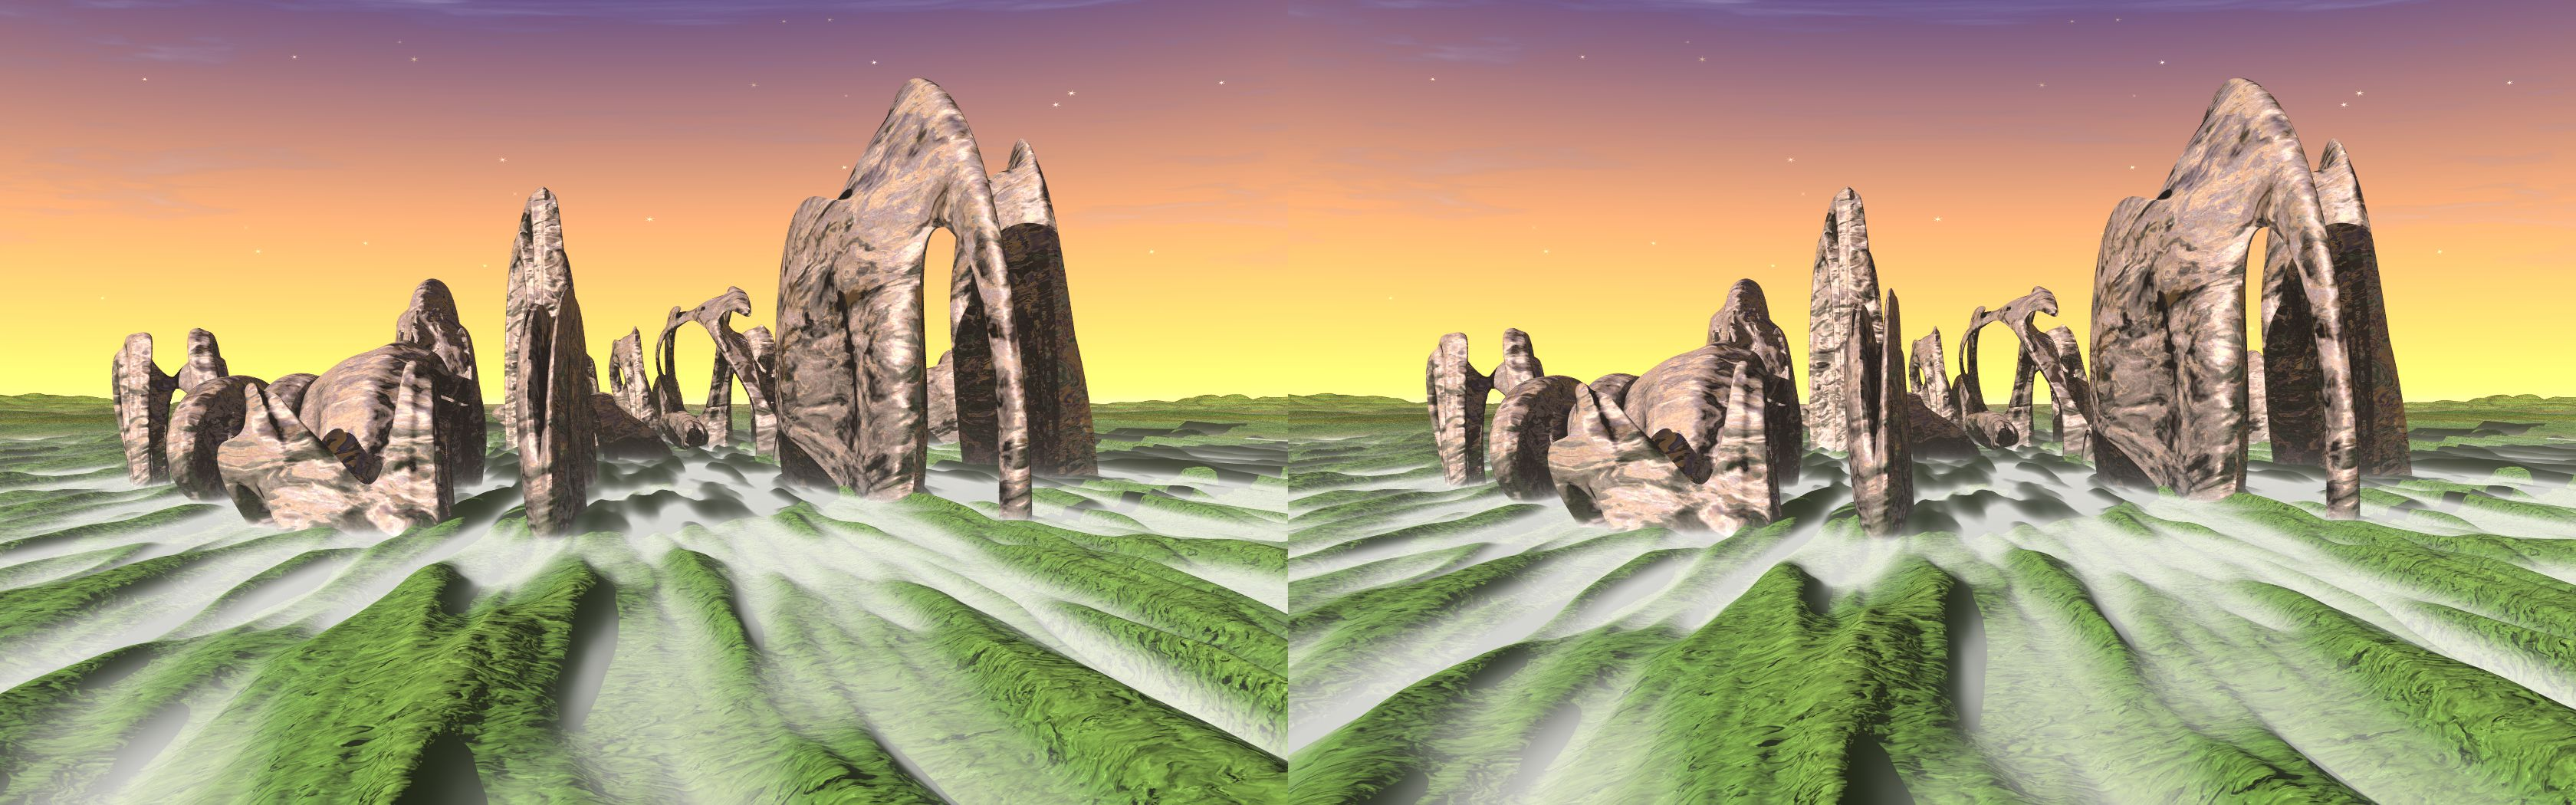 Sleeping Mammoth - 3D stereo JPS image